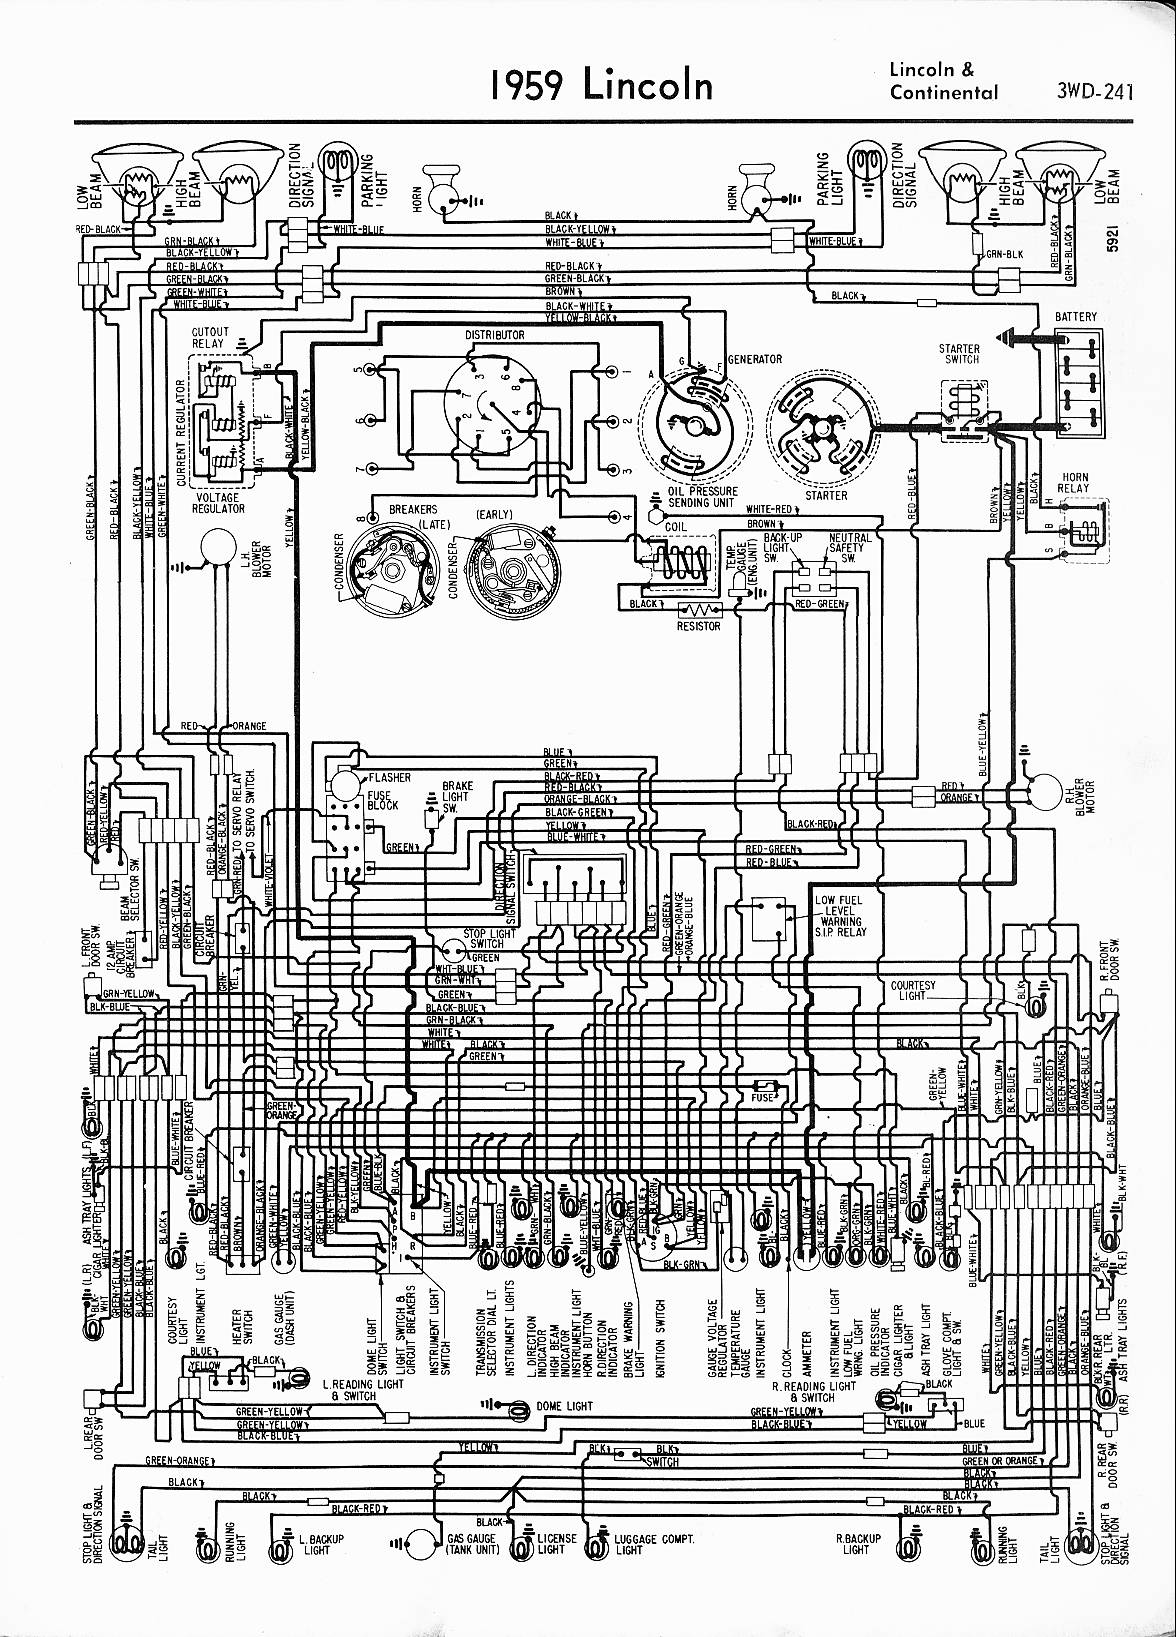 1964 lincoln wiring diagram example electrical wiring diagram u2022 rh huntervalleyhotels co